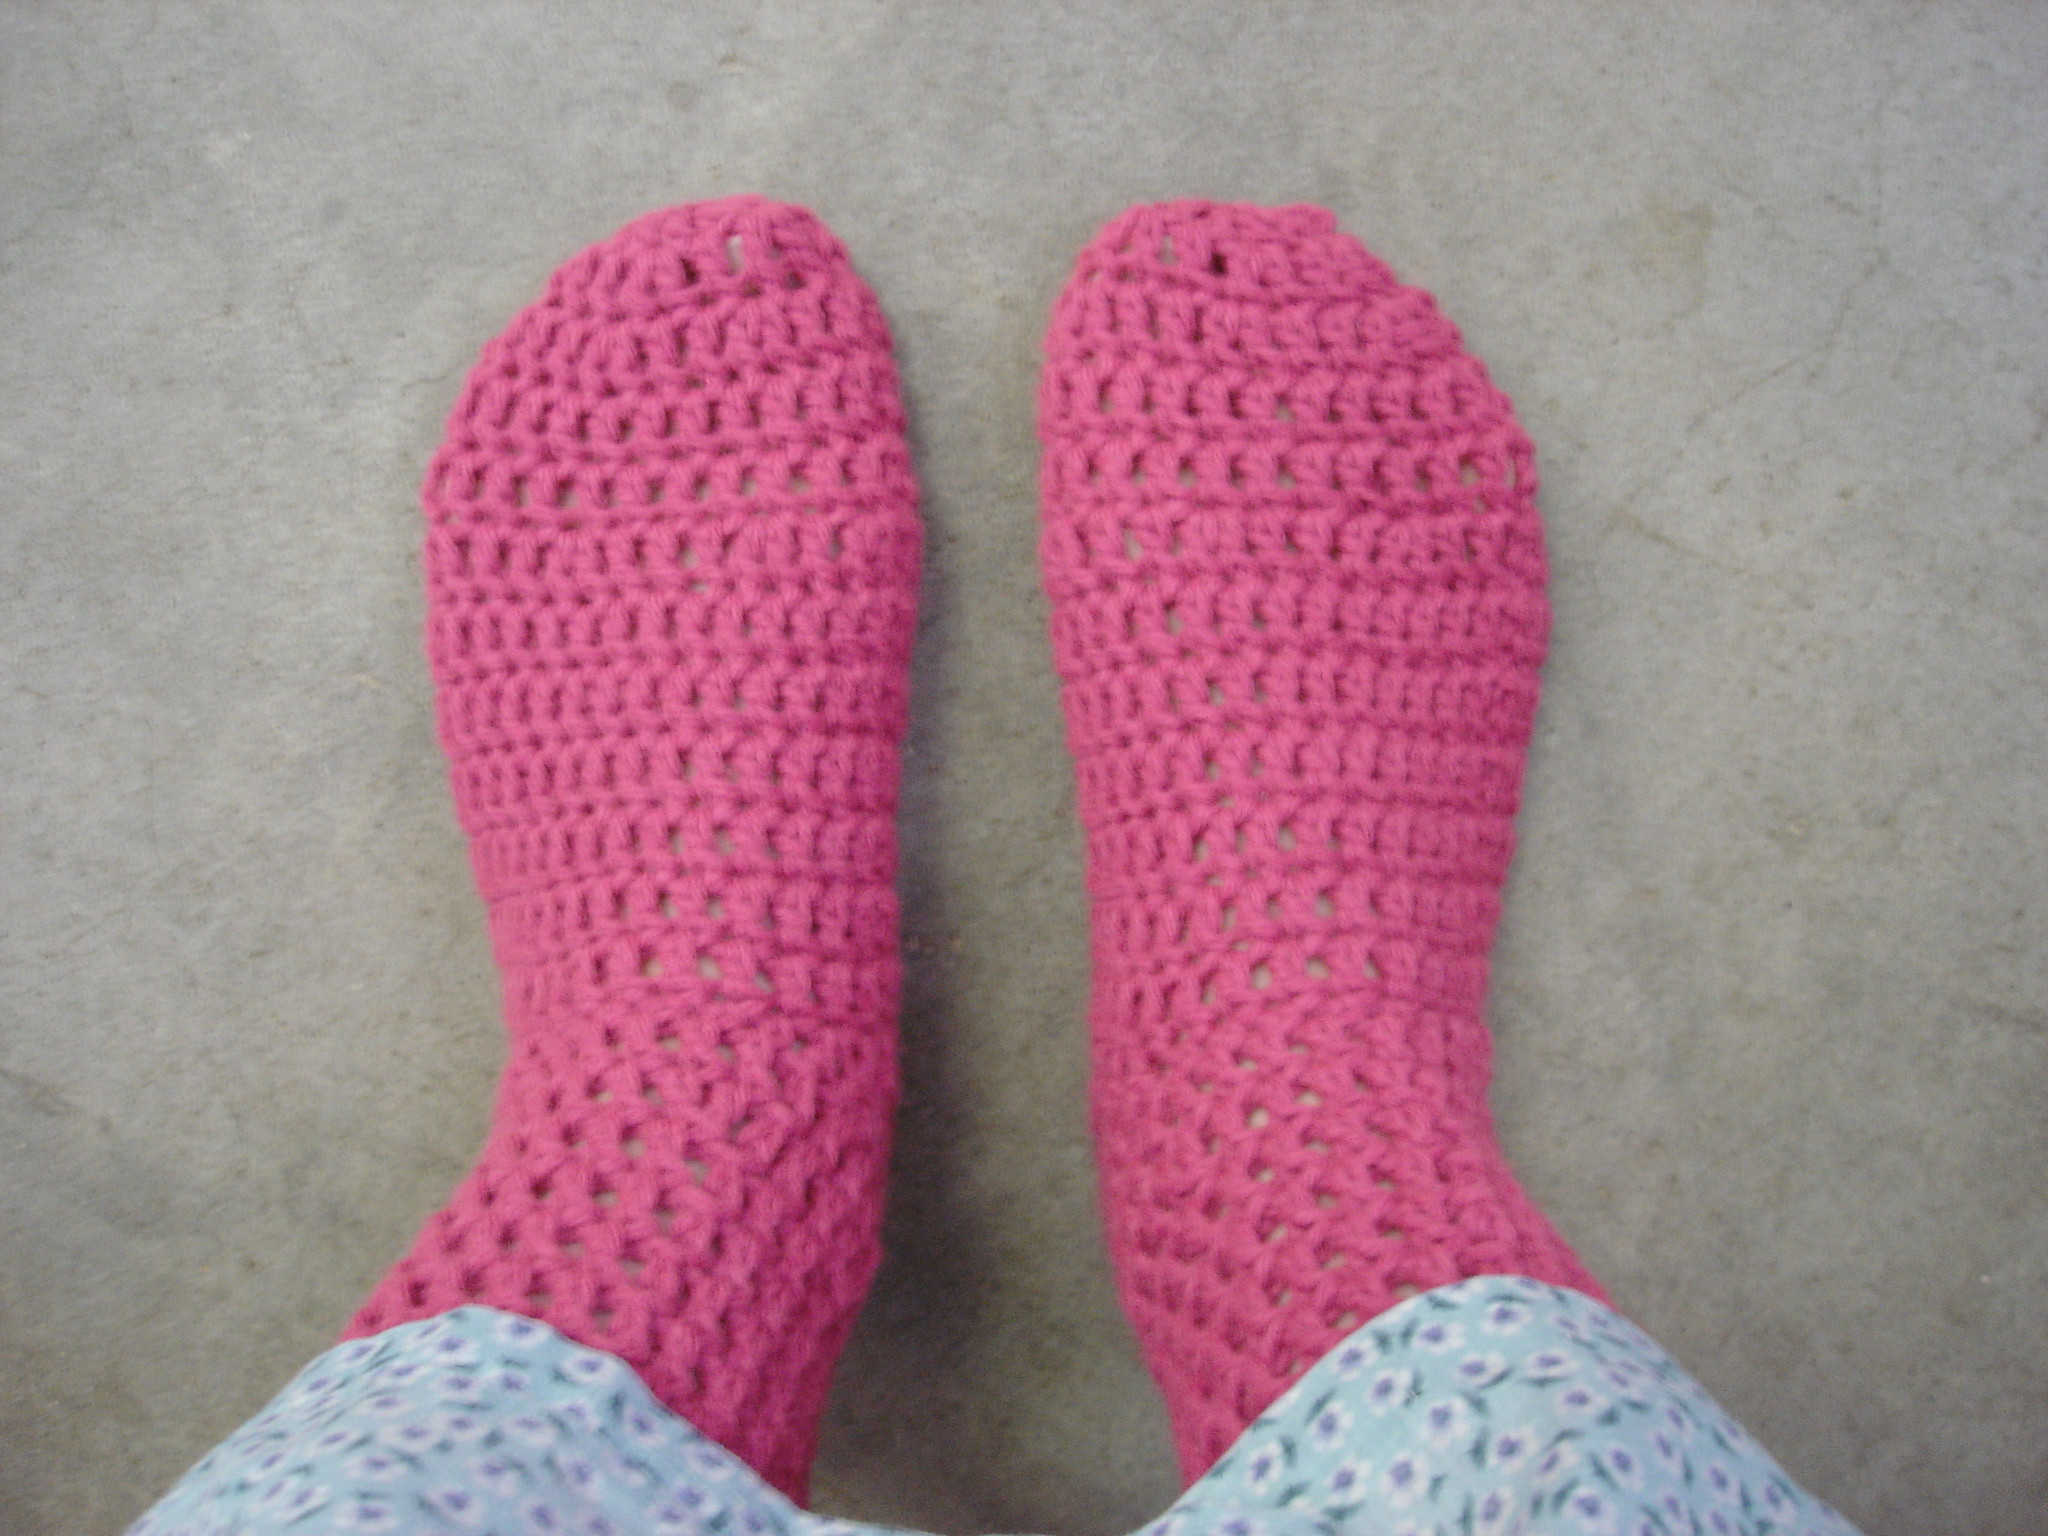 Simple Crochet Patterns New 18 Crochet sock Patterns Of Delightful 49 Models Simple Crochet Patterns